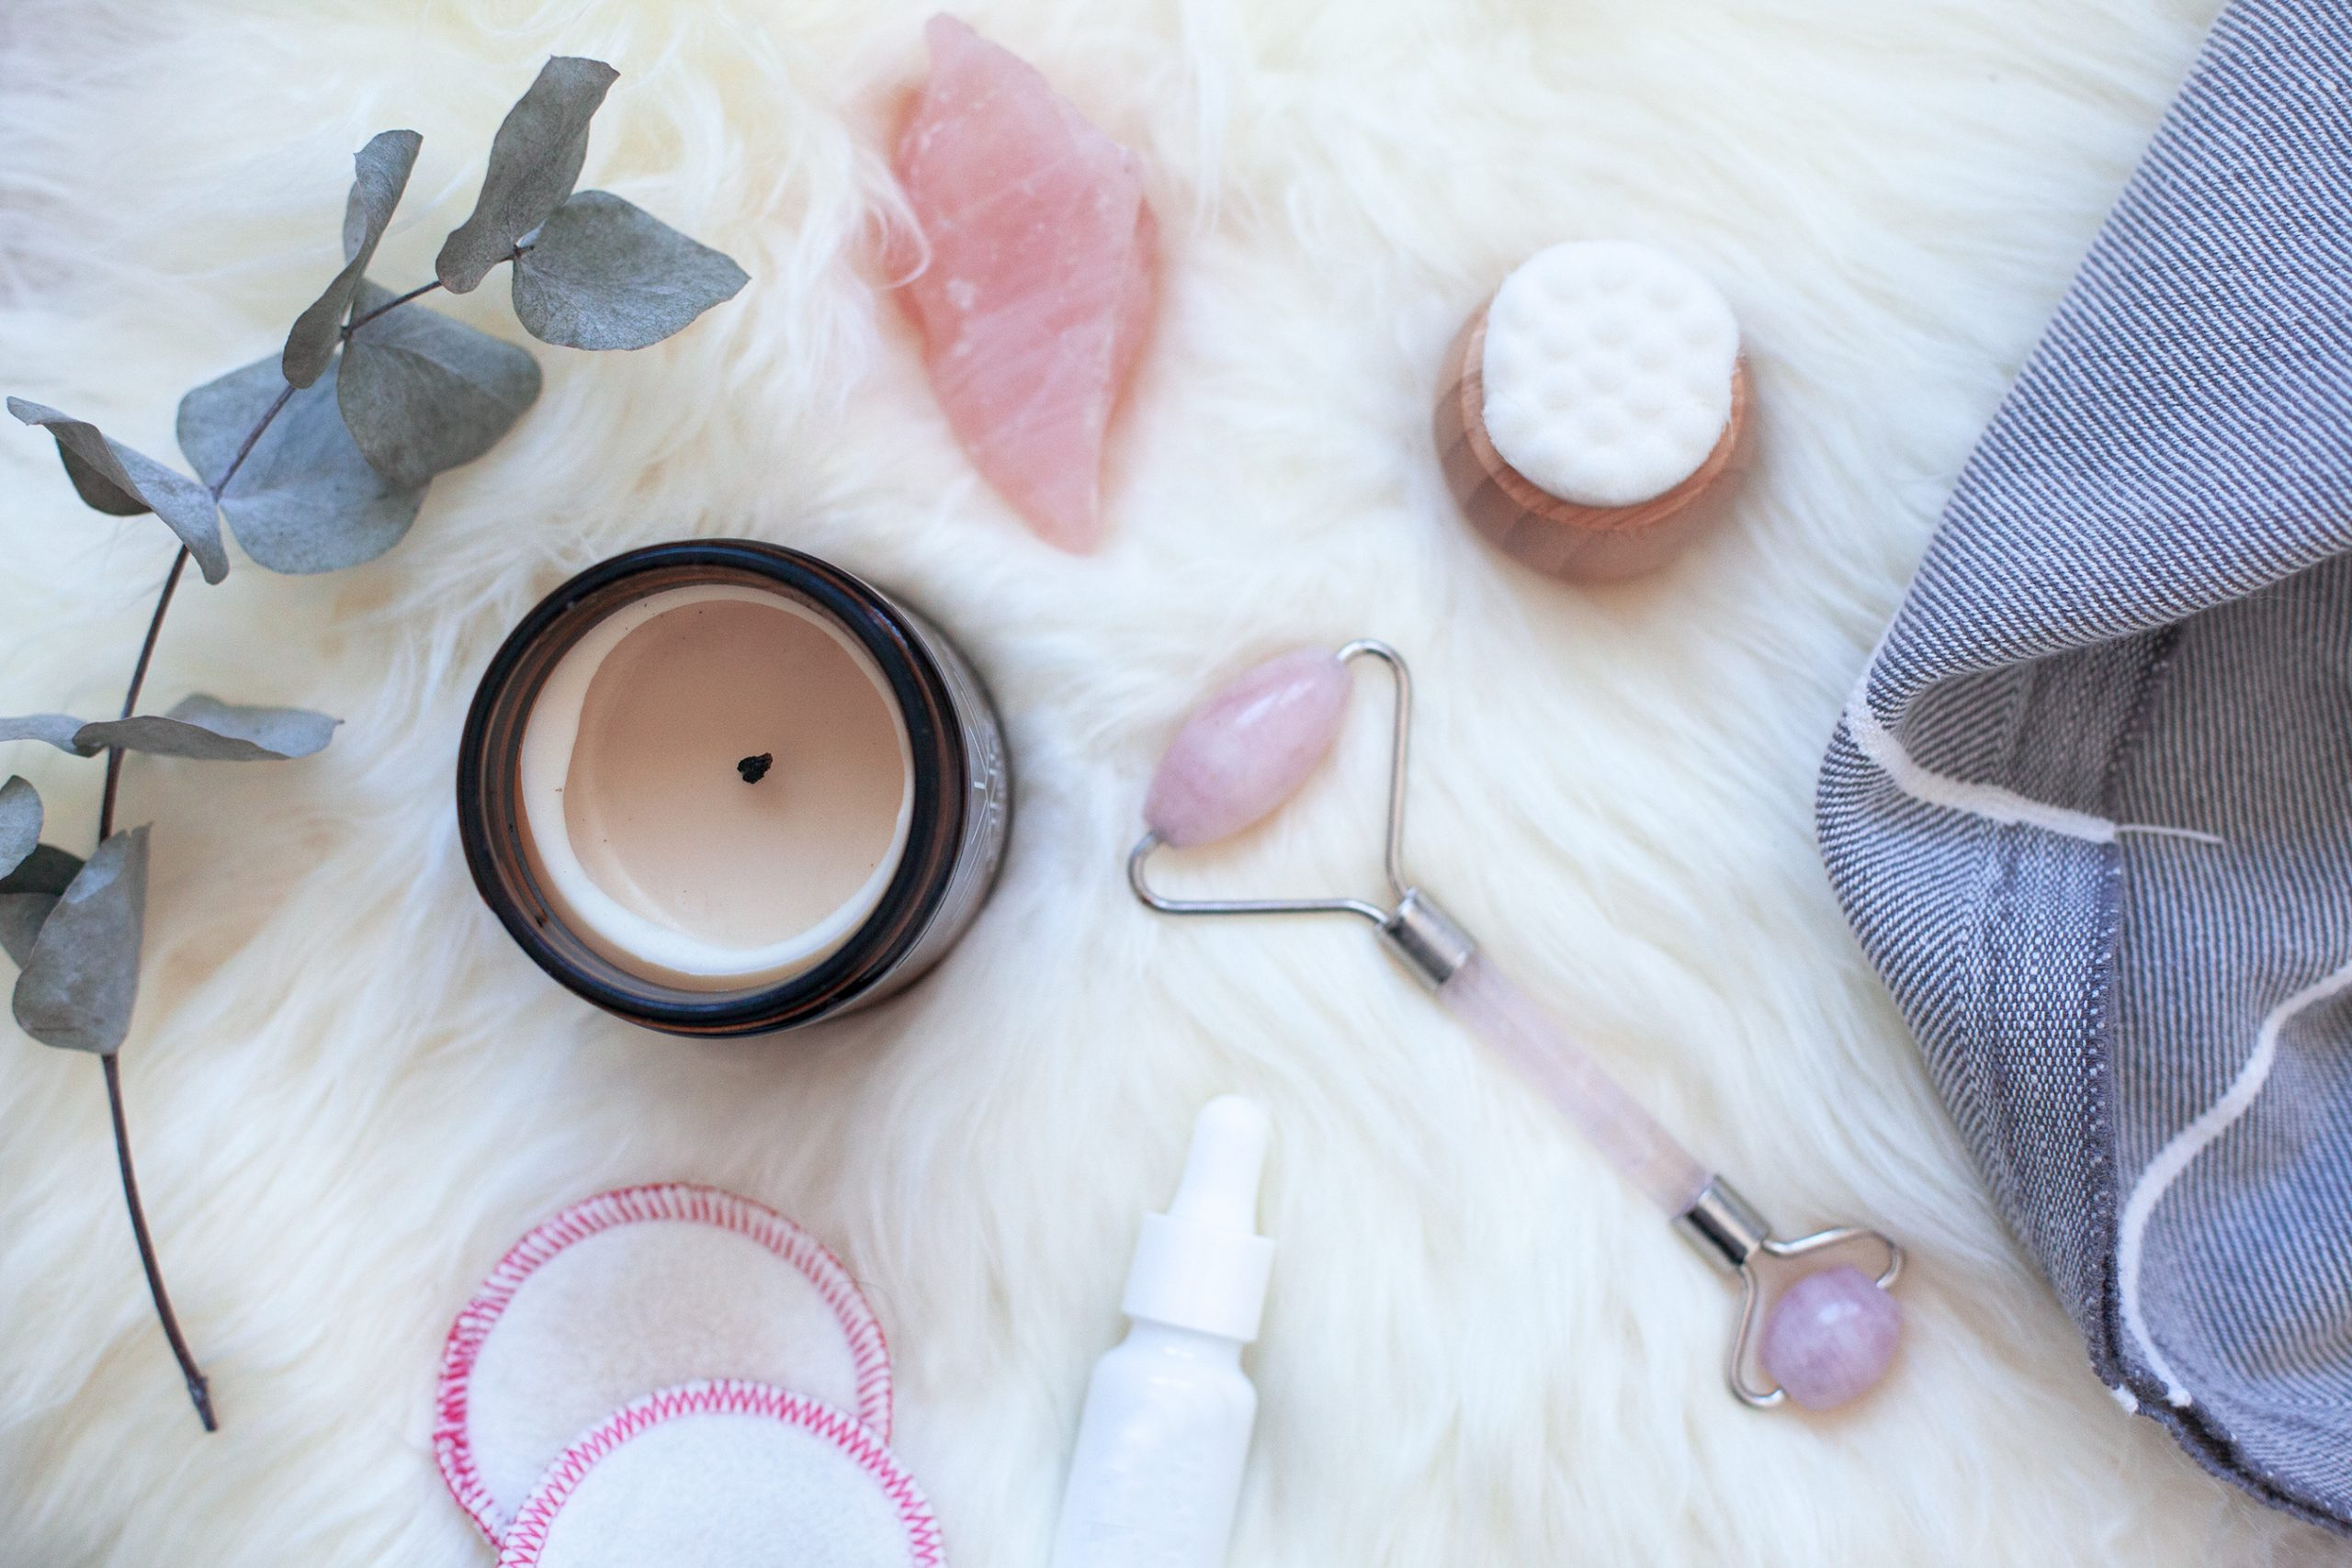 calming beauty products on a soft surface